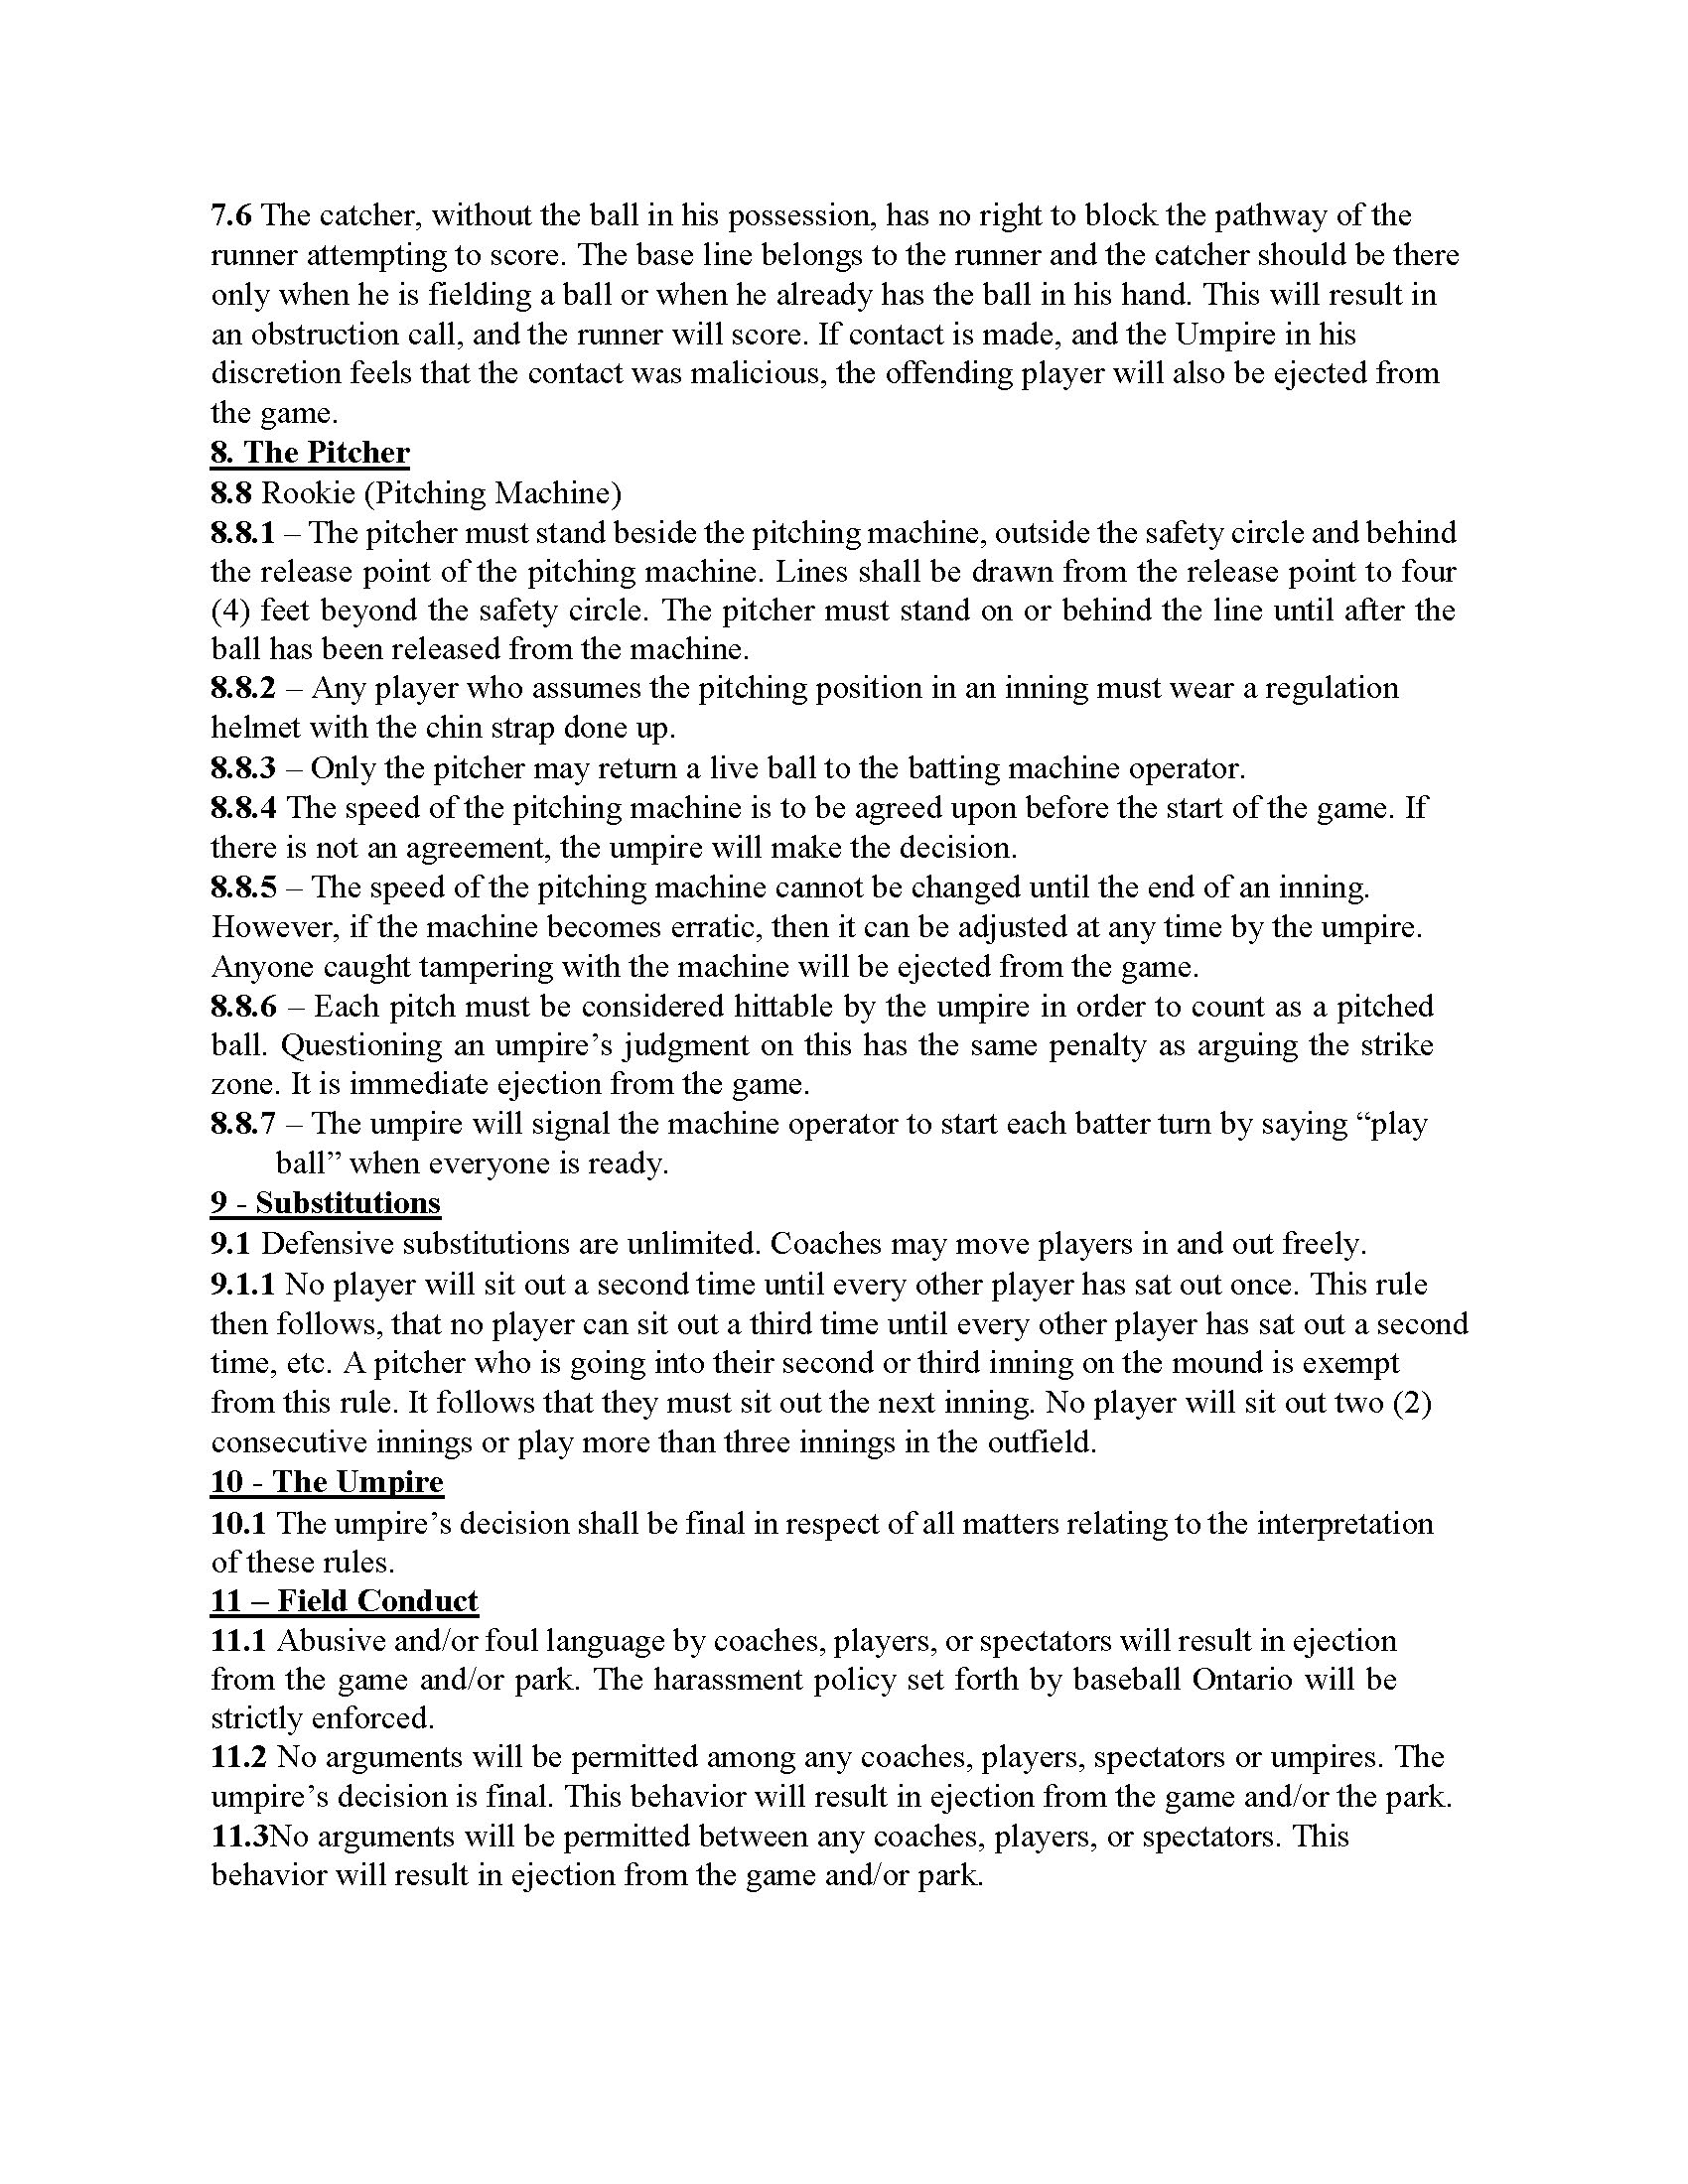 Sr. Rookie Rules 5